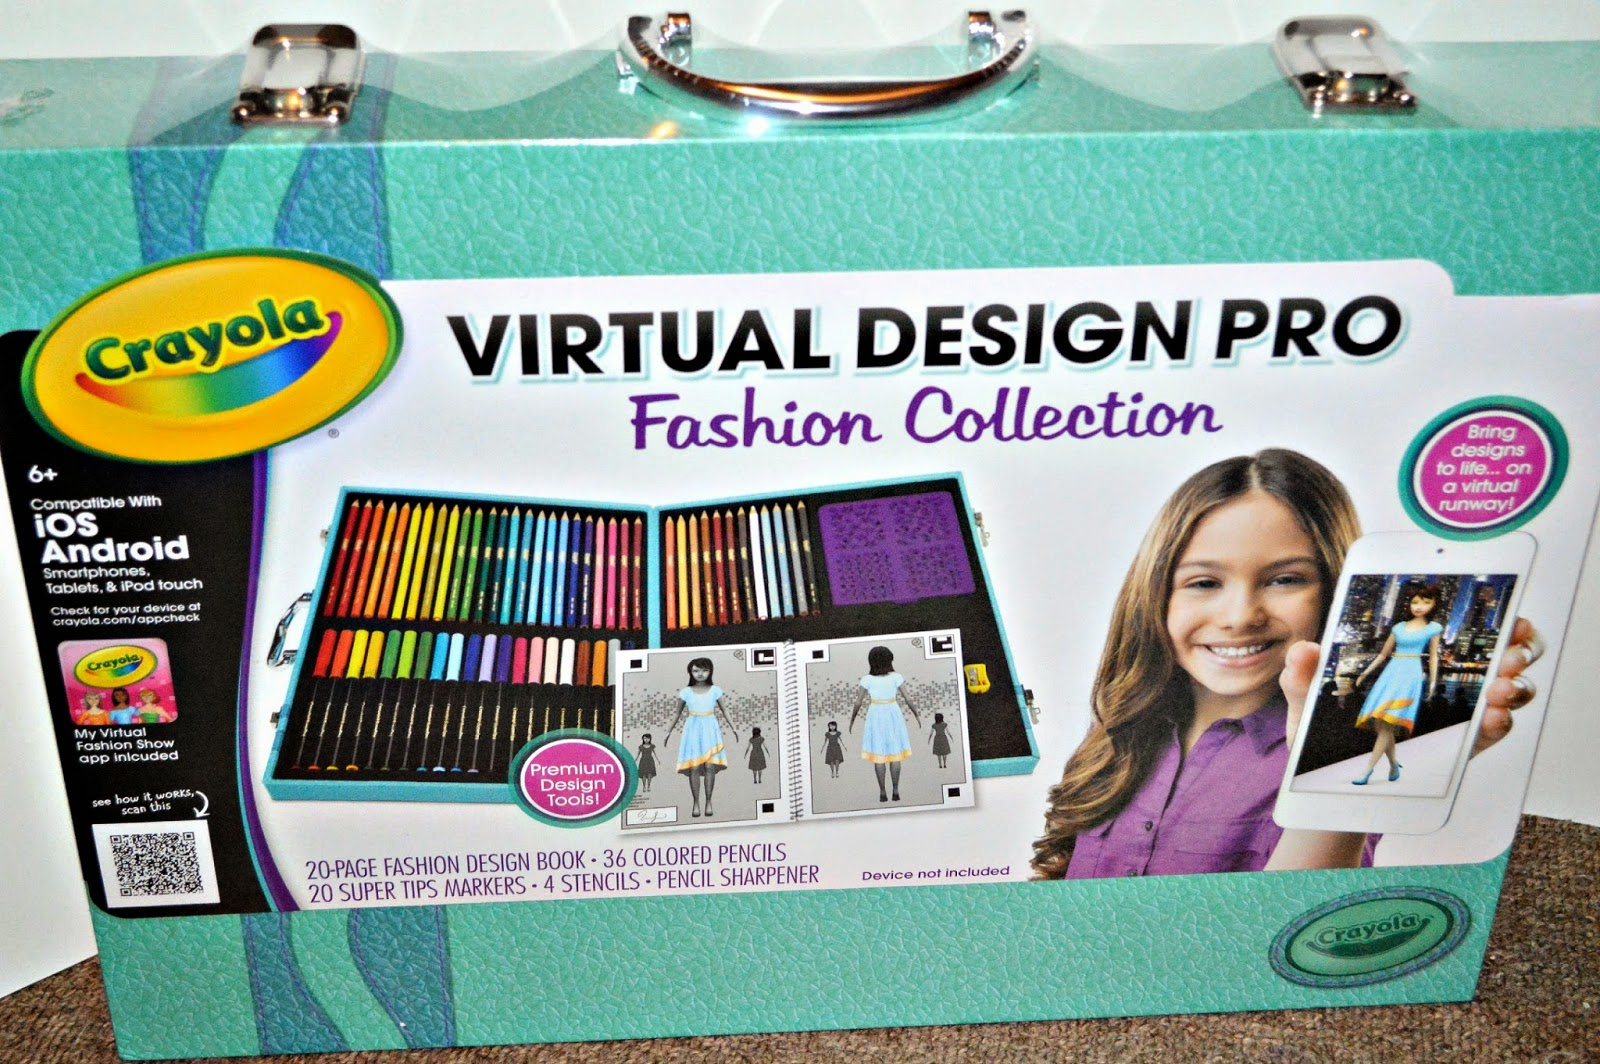 It 39 S A Mom Thing Reviews More Holiday Gift Guide Virtual Design Pro Fashion Collection